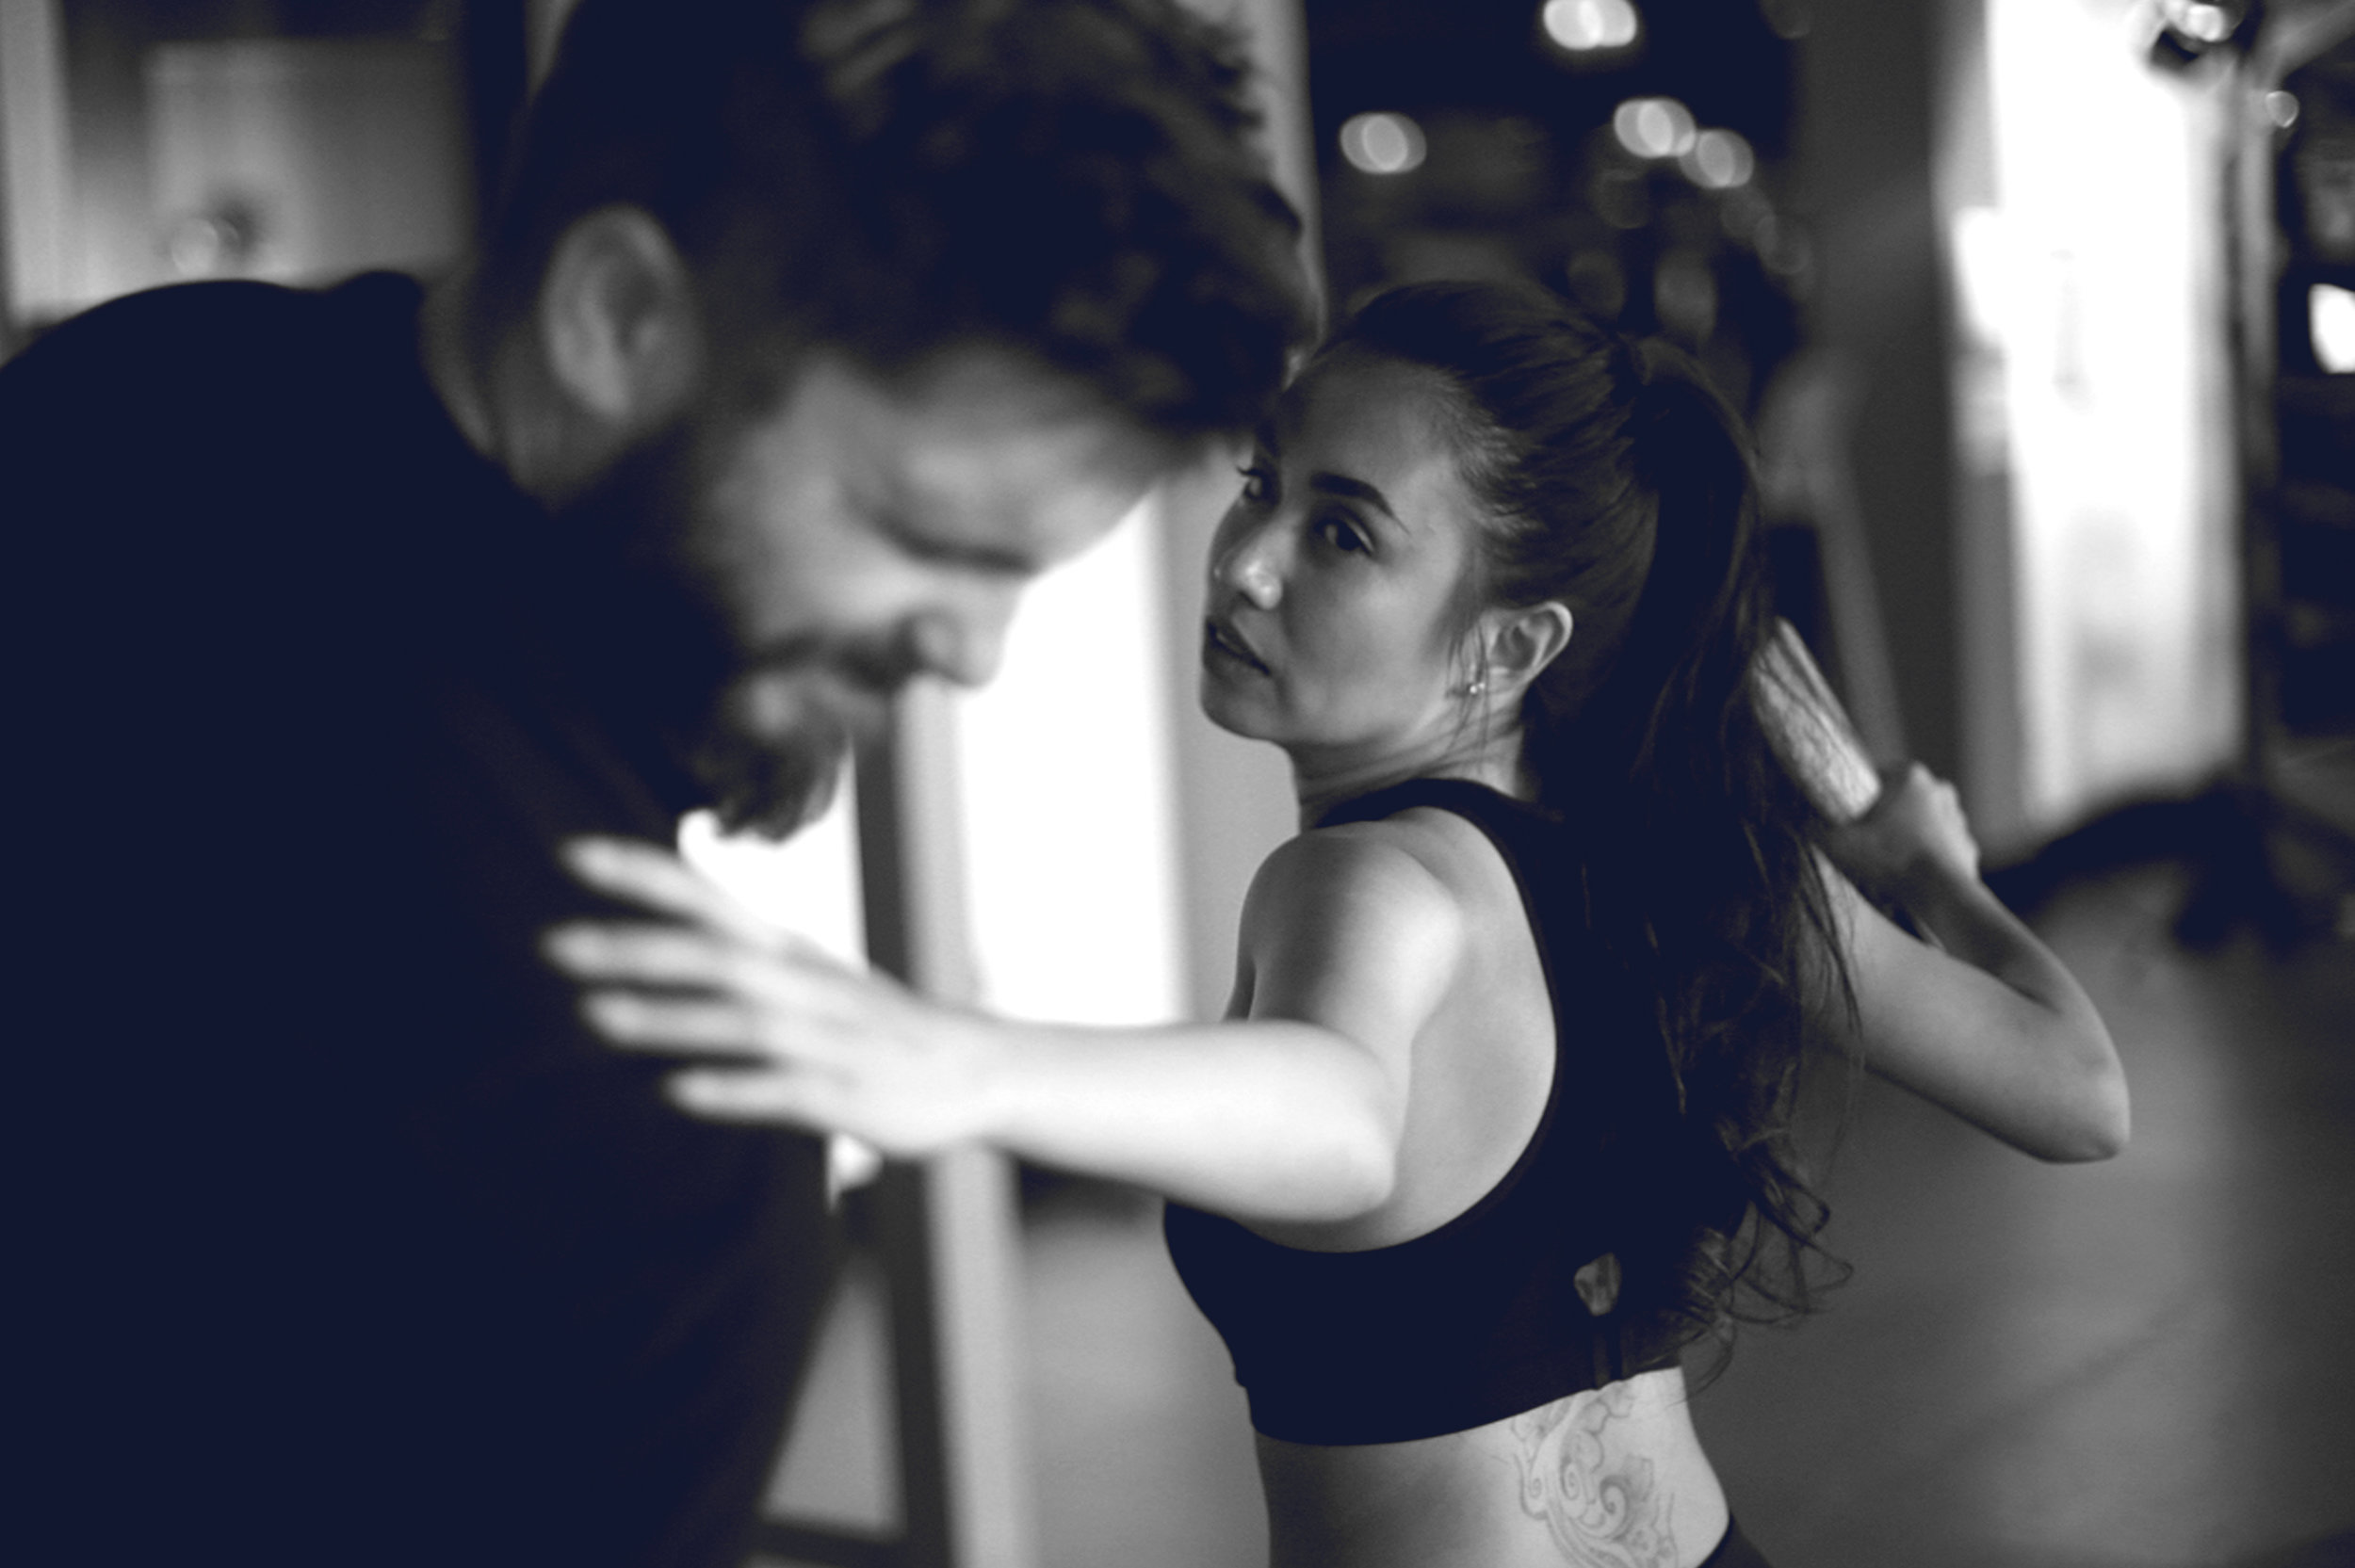 WE GET FIT - Self-defense and self-protection are important issues. We take our training seriously. Not only are our classes useful and empowering but also fitness focused.